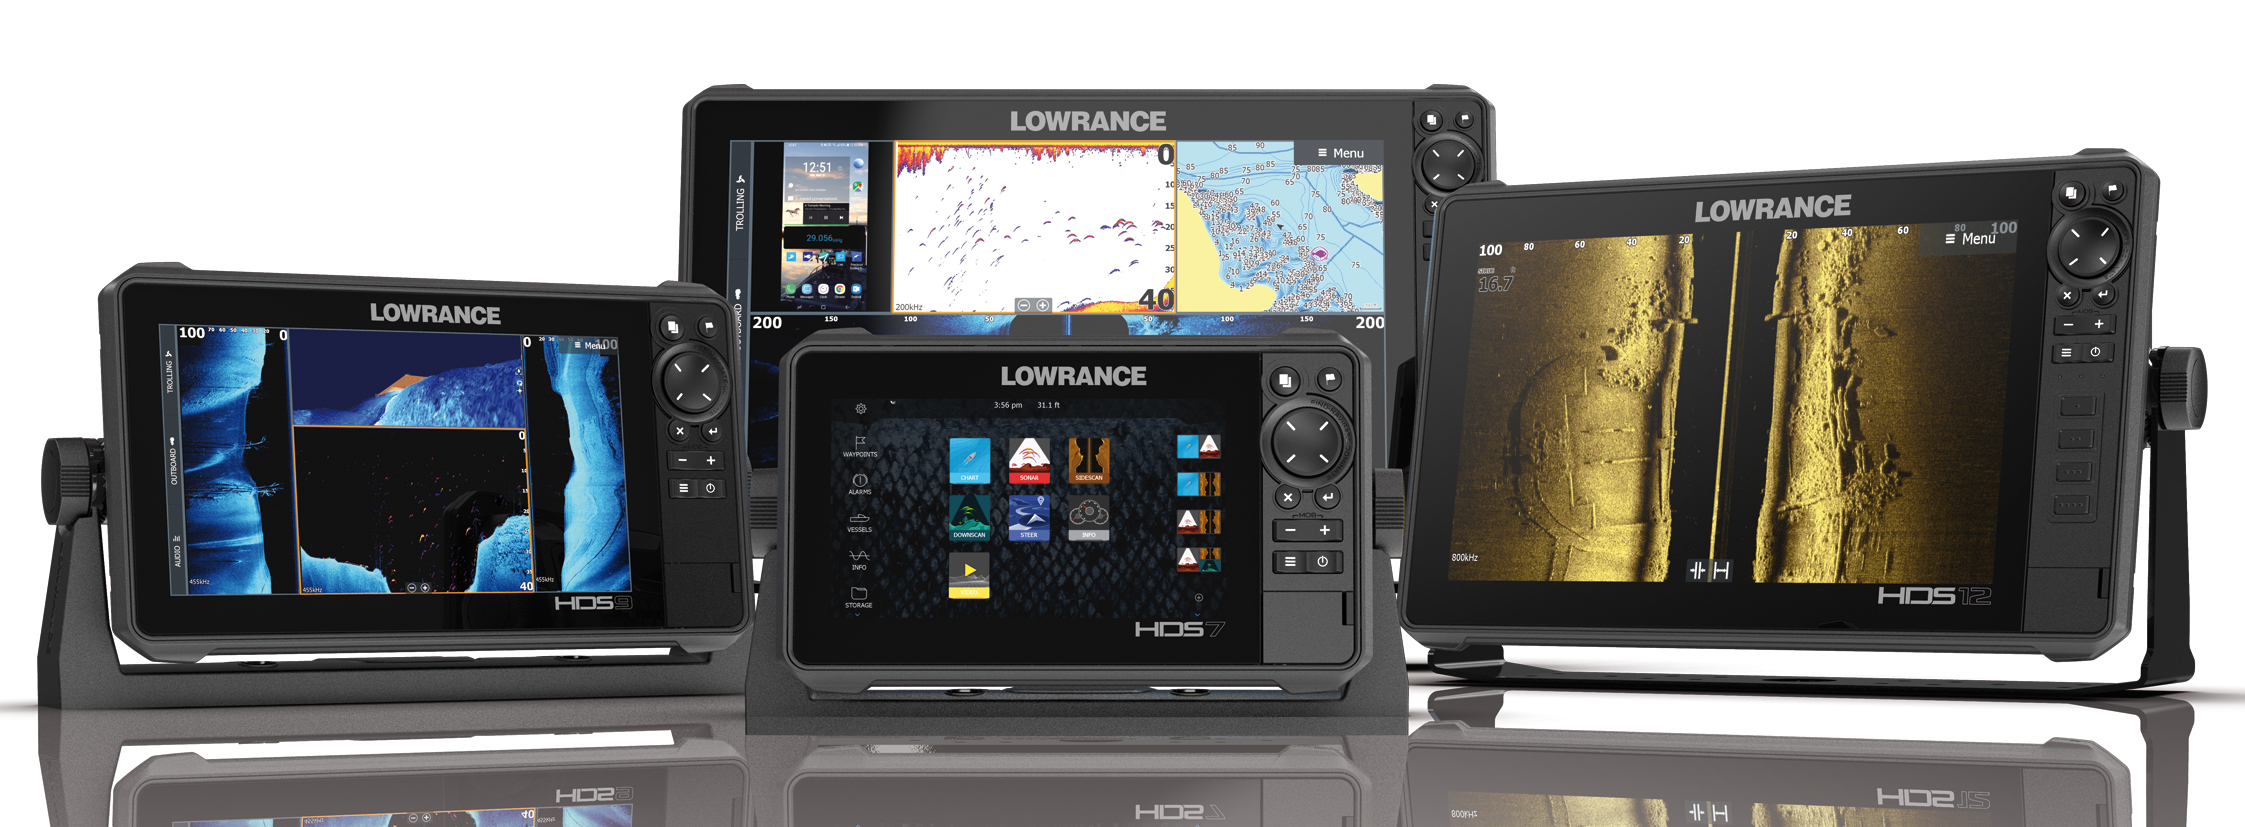 LOWRANCE HDS LIVE CHIRP COMBO - G F N  Gibellato Forniture